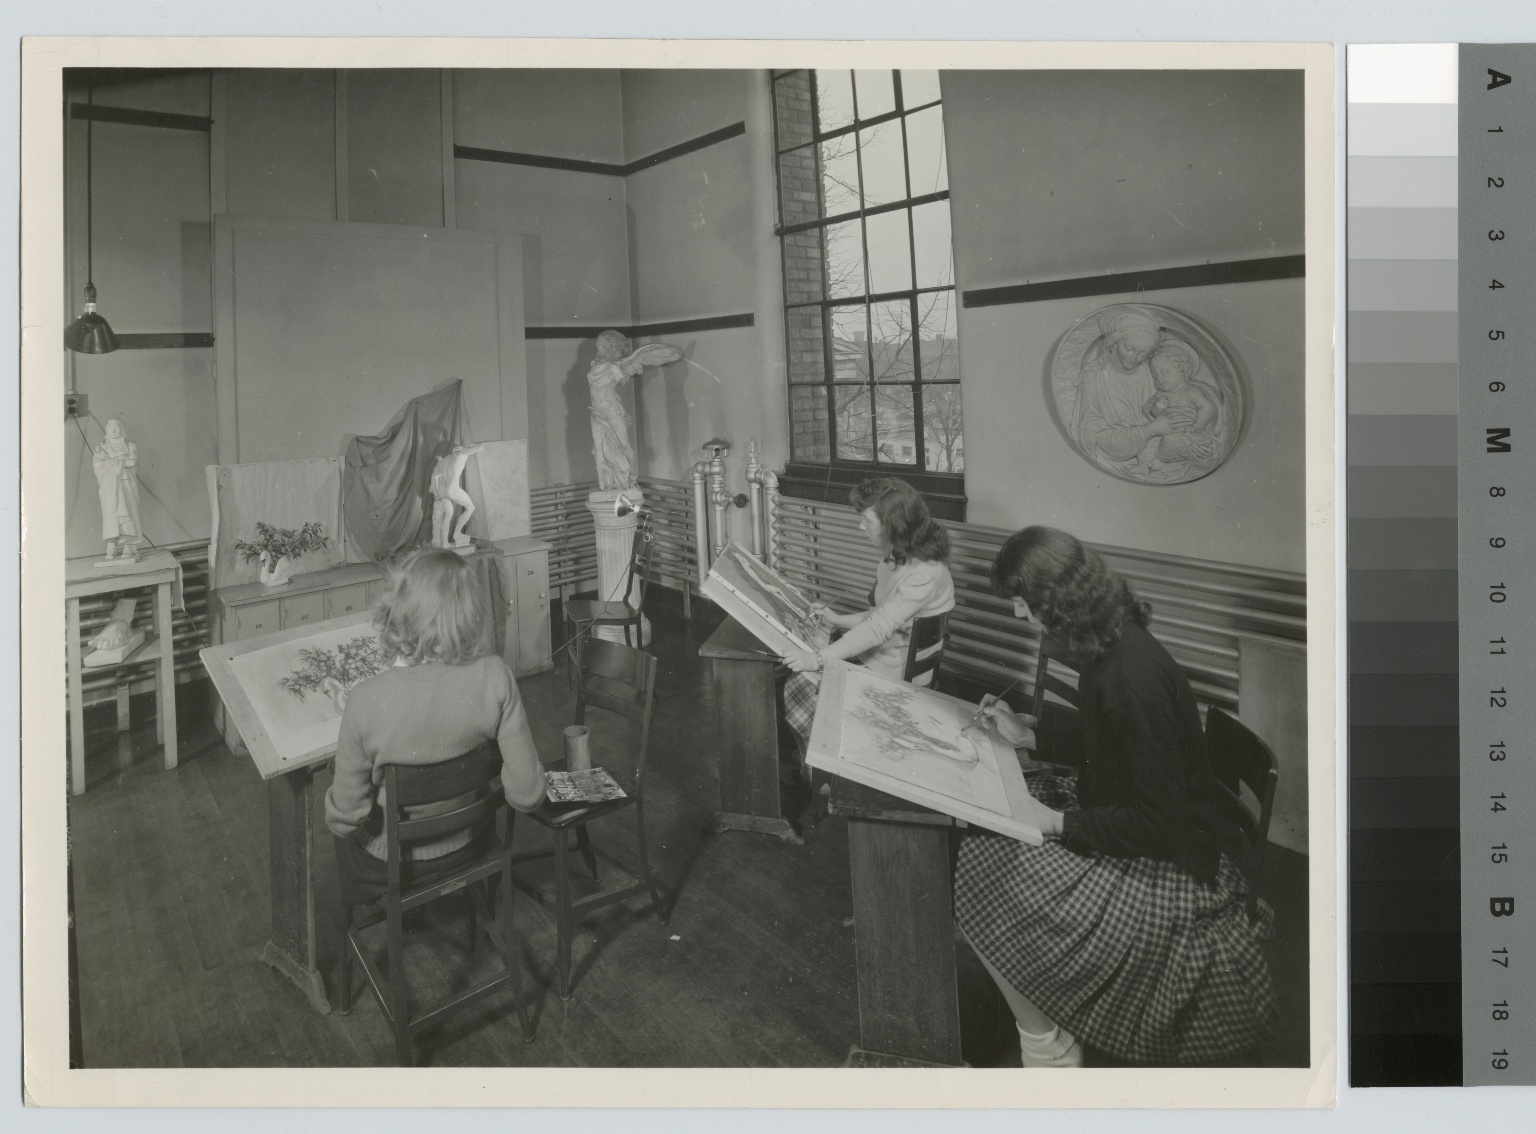 Academics, Art and Design. Three female students in a painting class.